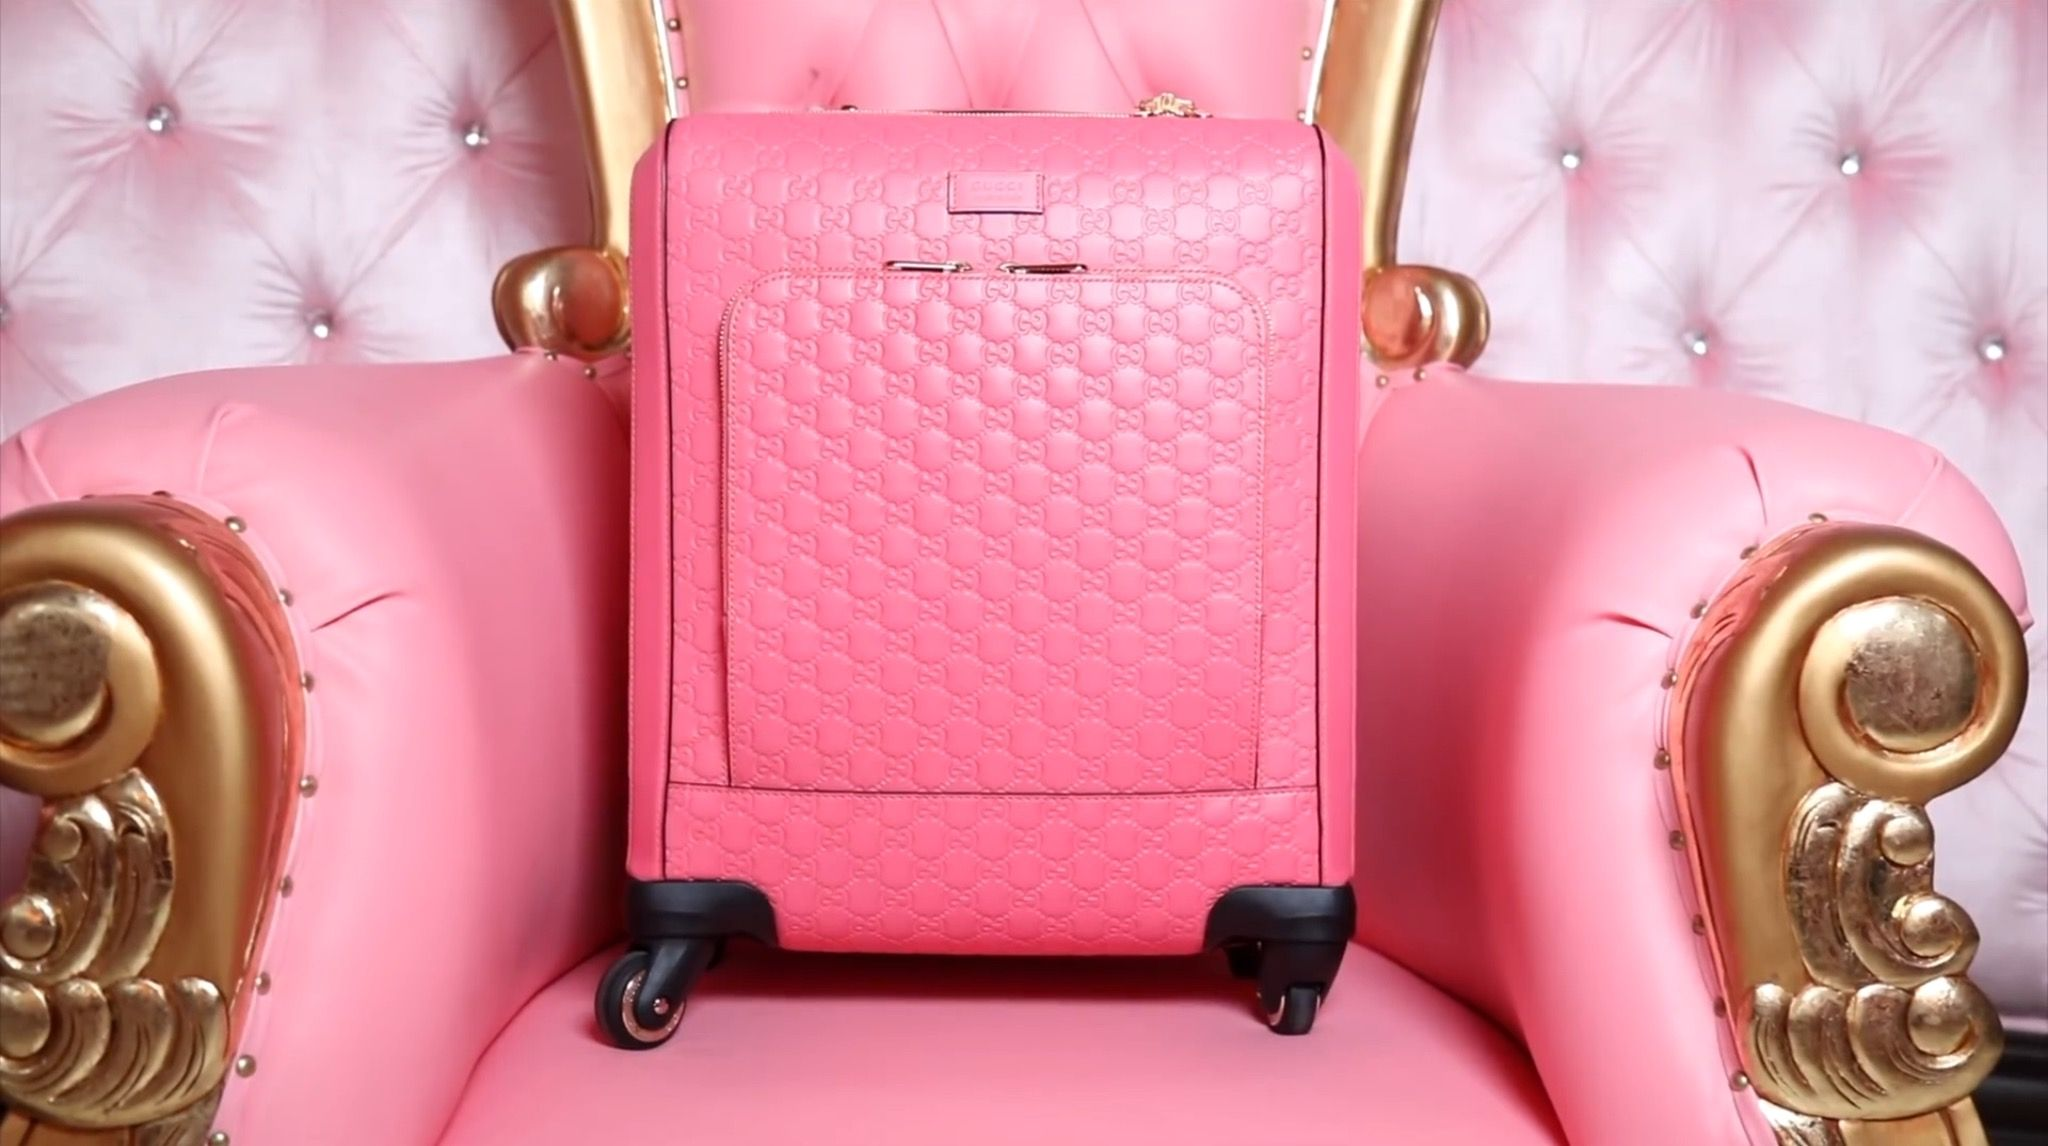 aba0de2769b5 GUCCI MADE ME PINK CUSTOM LUGGAGE! - Jeffree Star